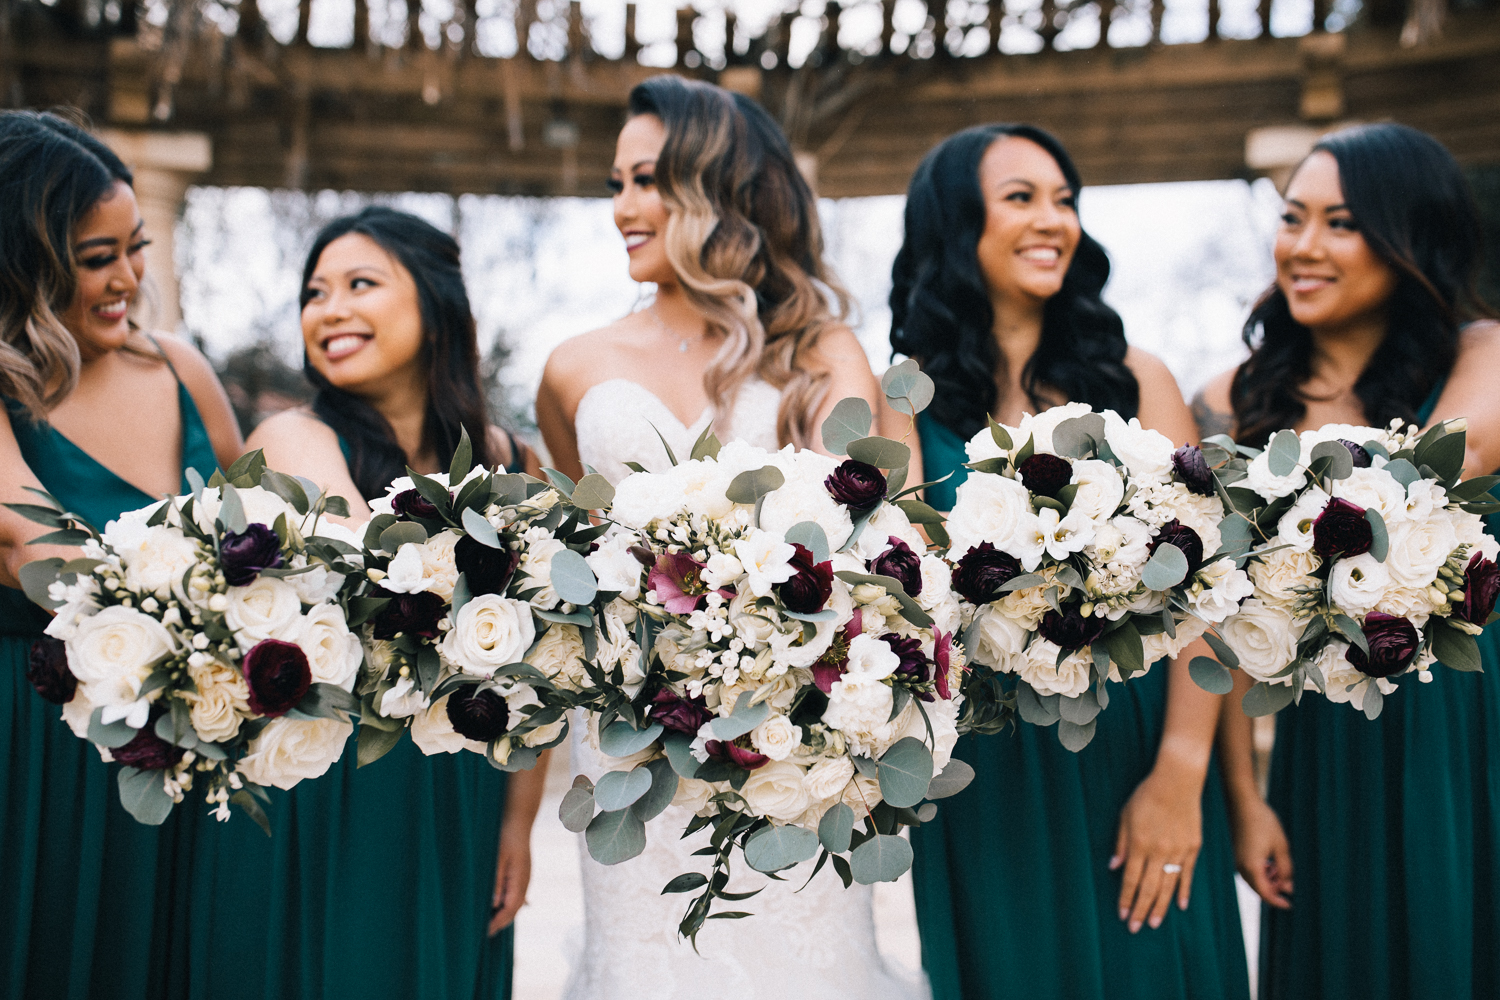 2019_01_ 202019.01.20 Santiago Wedding Blog Photos Edited For Web 0028.jpg